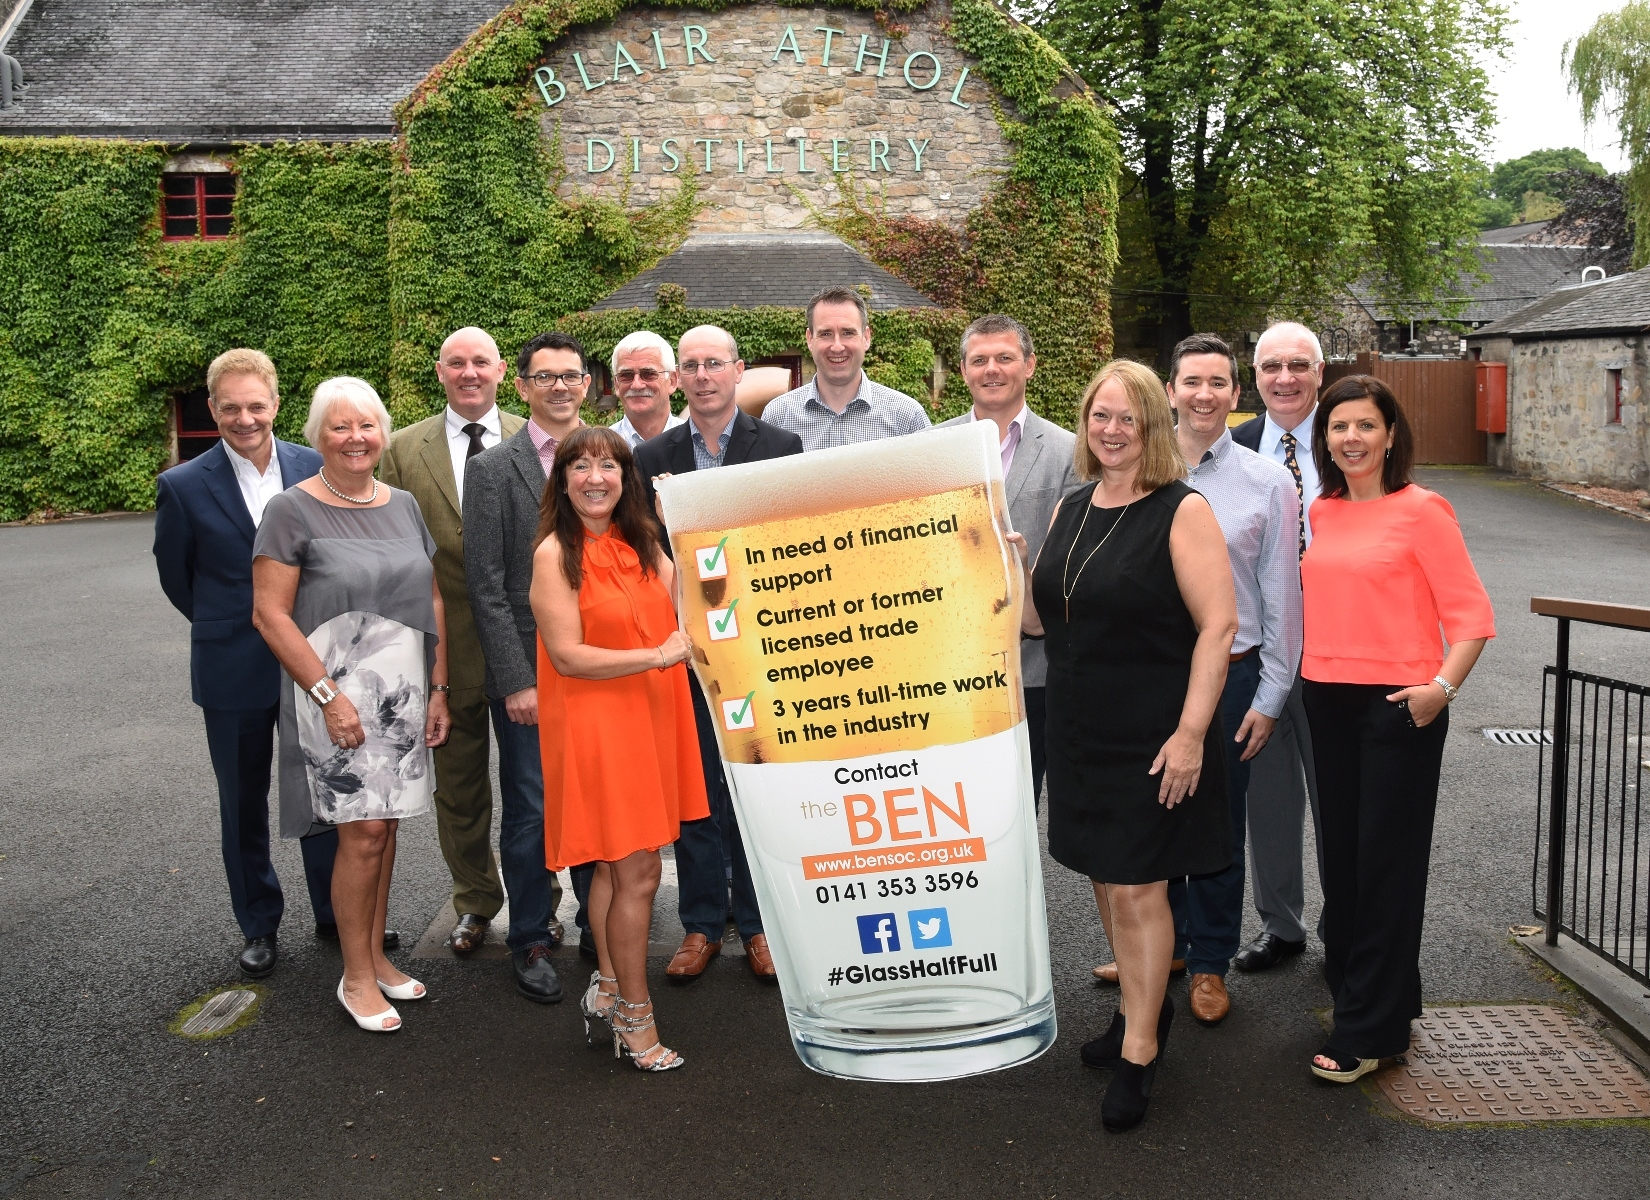 Senior figures from the Scottish licensed trade at the launch of the BEN's Glass Half Full campaign, at Blair Athol Distillery in Pitlochry.